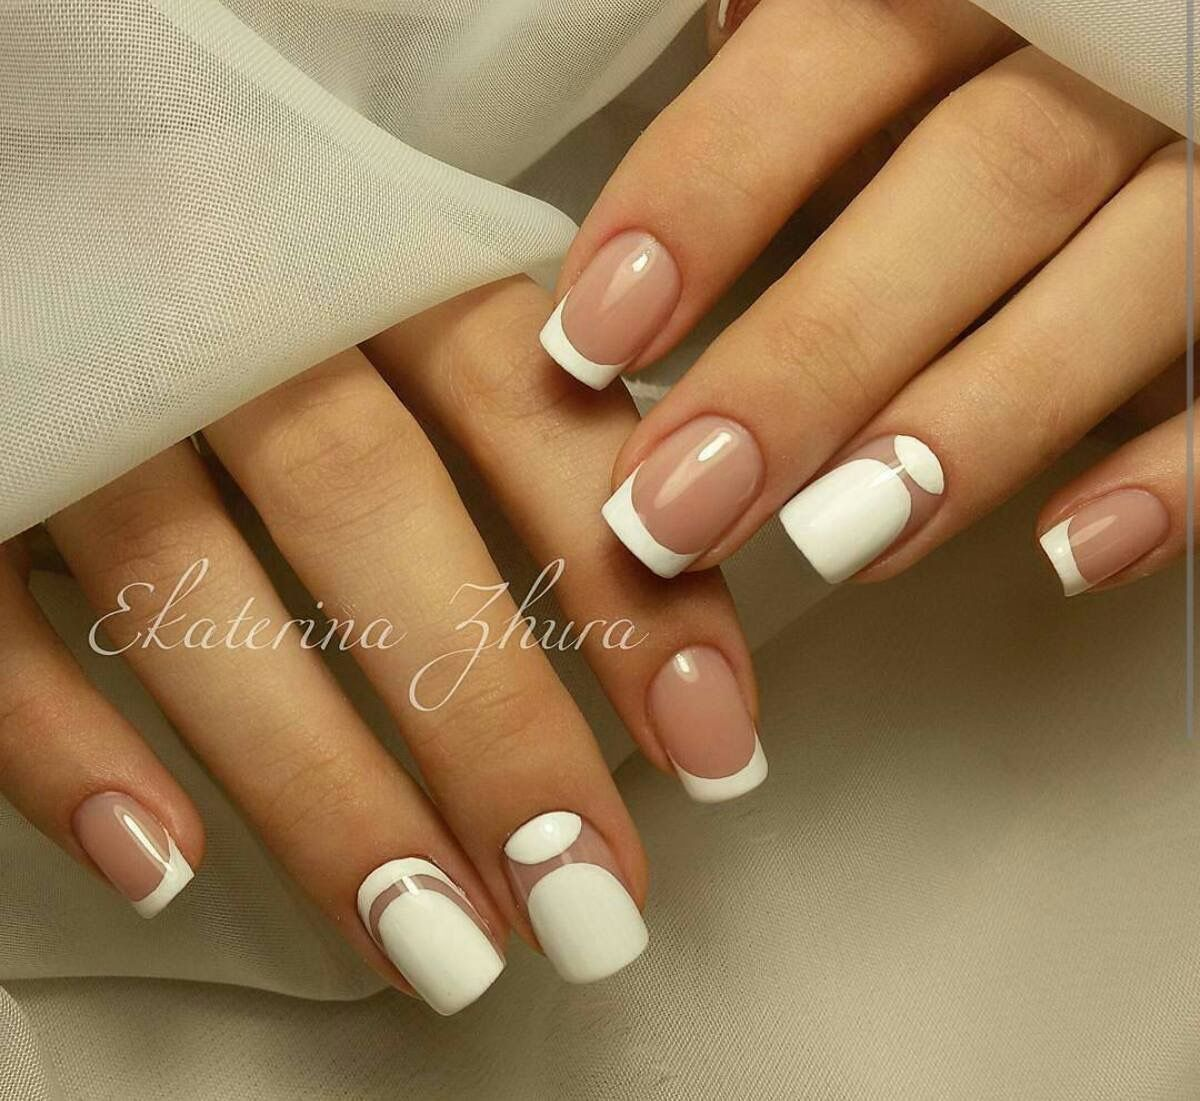 Pin by Маша Иванова on маникюр | Pinterest | Nails games and Makeup